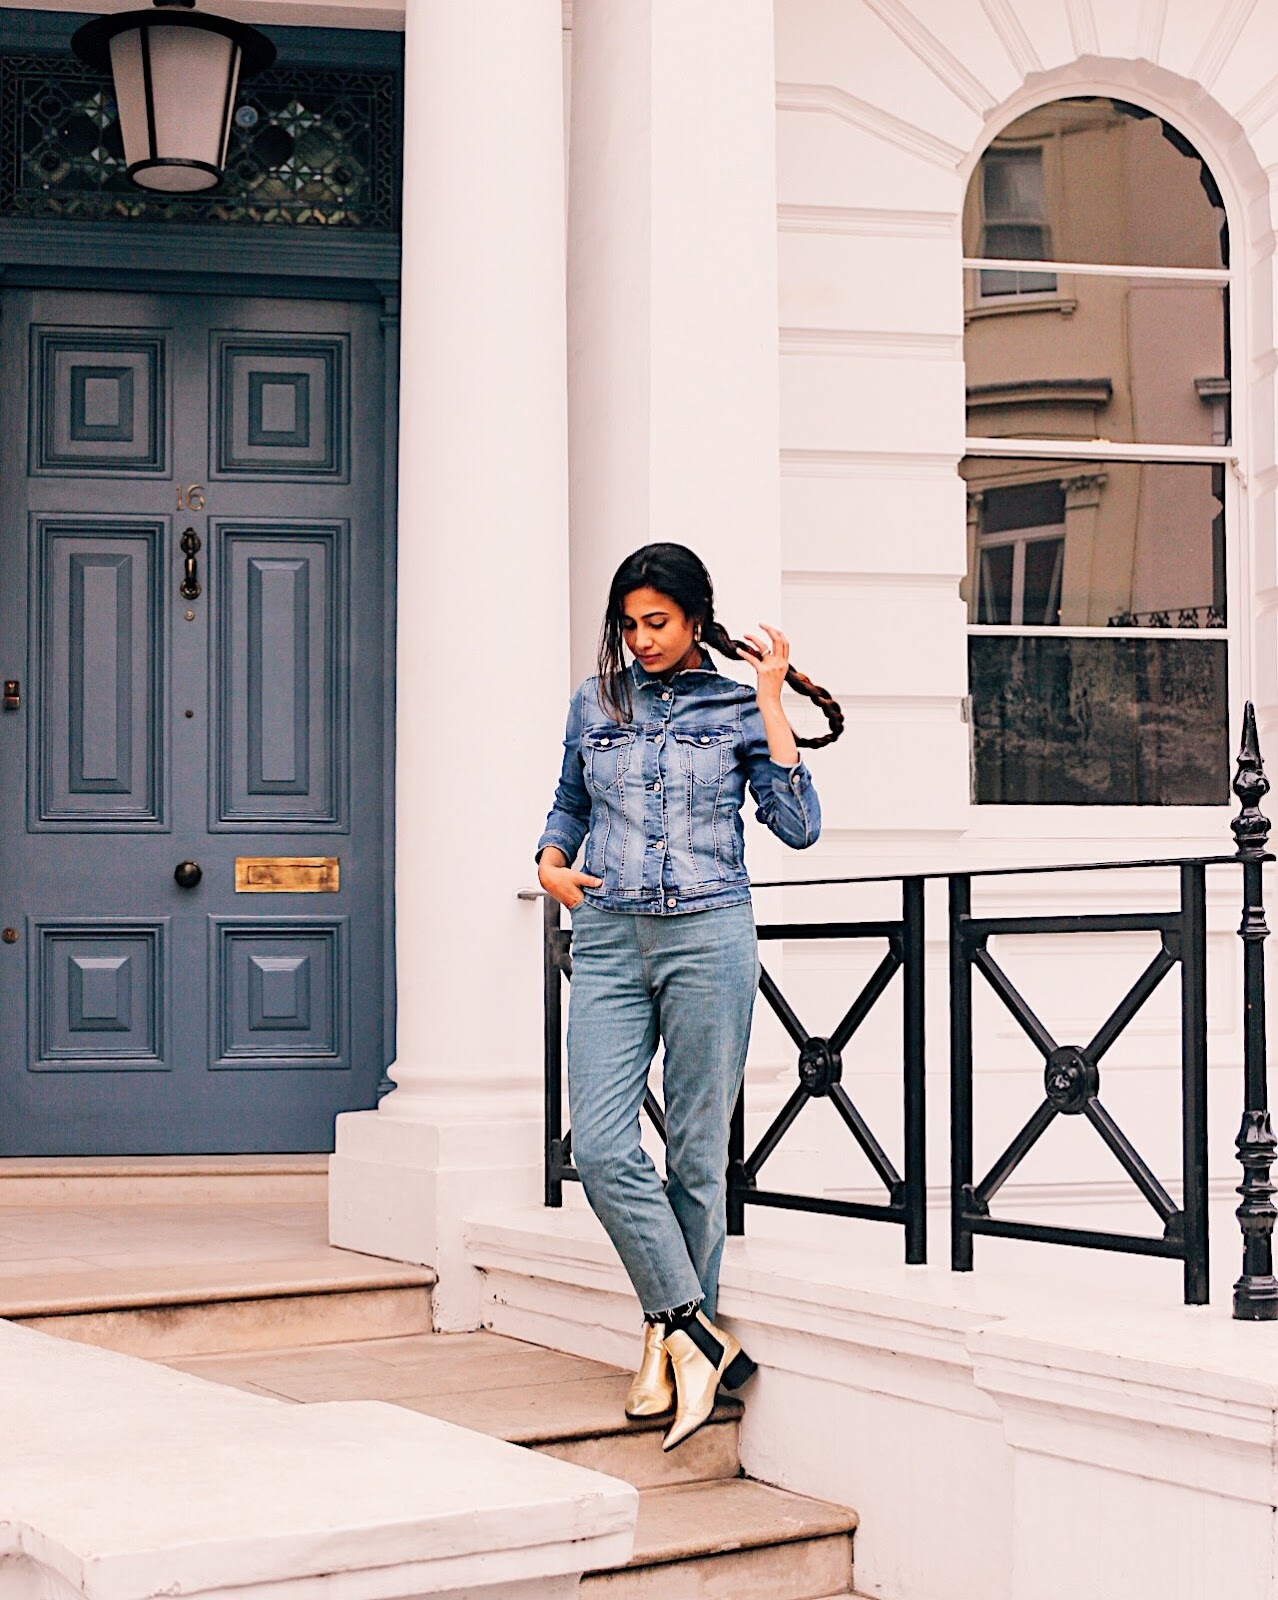 how to wear denim on denim, denim on denim, autumn winter look, autumn winter style inspiration, gold booties, autumn winter delhi, indian blog, indian blogger, top indian blog, indian luxury blog, uk blog, british blog, london blog, delhi blogger, street style, spring summer 2017, spring summer lookbook, wear trends, how to, how to style, effortless chic, parisian style, how to dress, style tips, street style delhi, delhi blog, delhi fashion blogger, street style tips, parisian chic, parisian outfit, london street style, weekend outfit, city girl style, boho chic look, how to effortless chic, summer tips, autumn fashion, top europe style, autumn blogger outfit, denim, jeans, denim trend 2017, style denim trend,